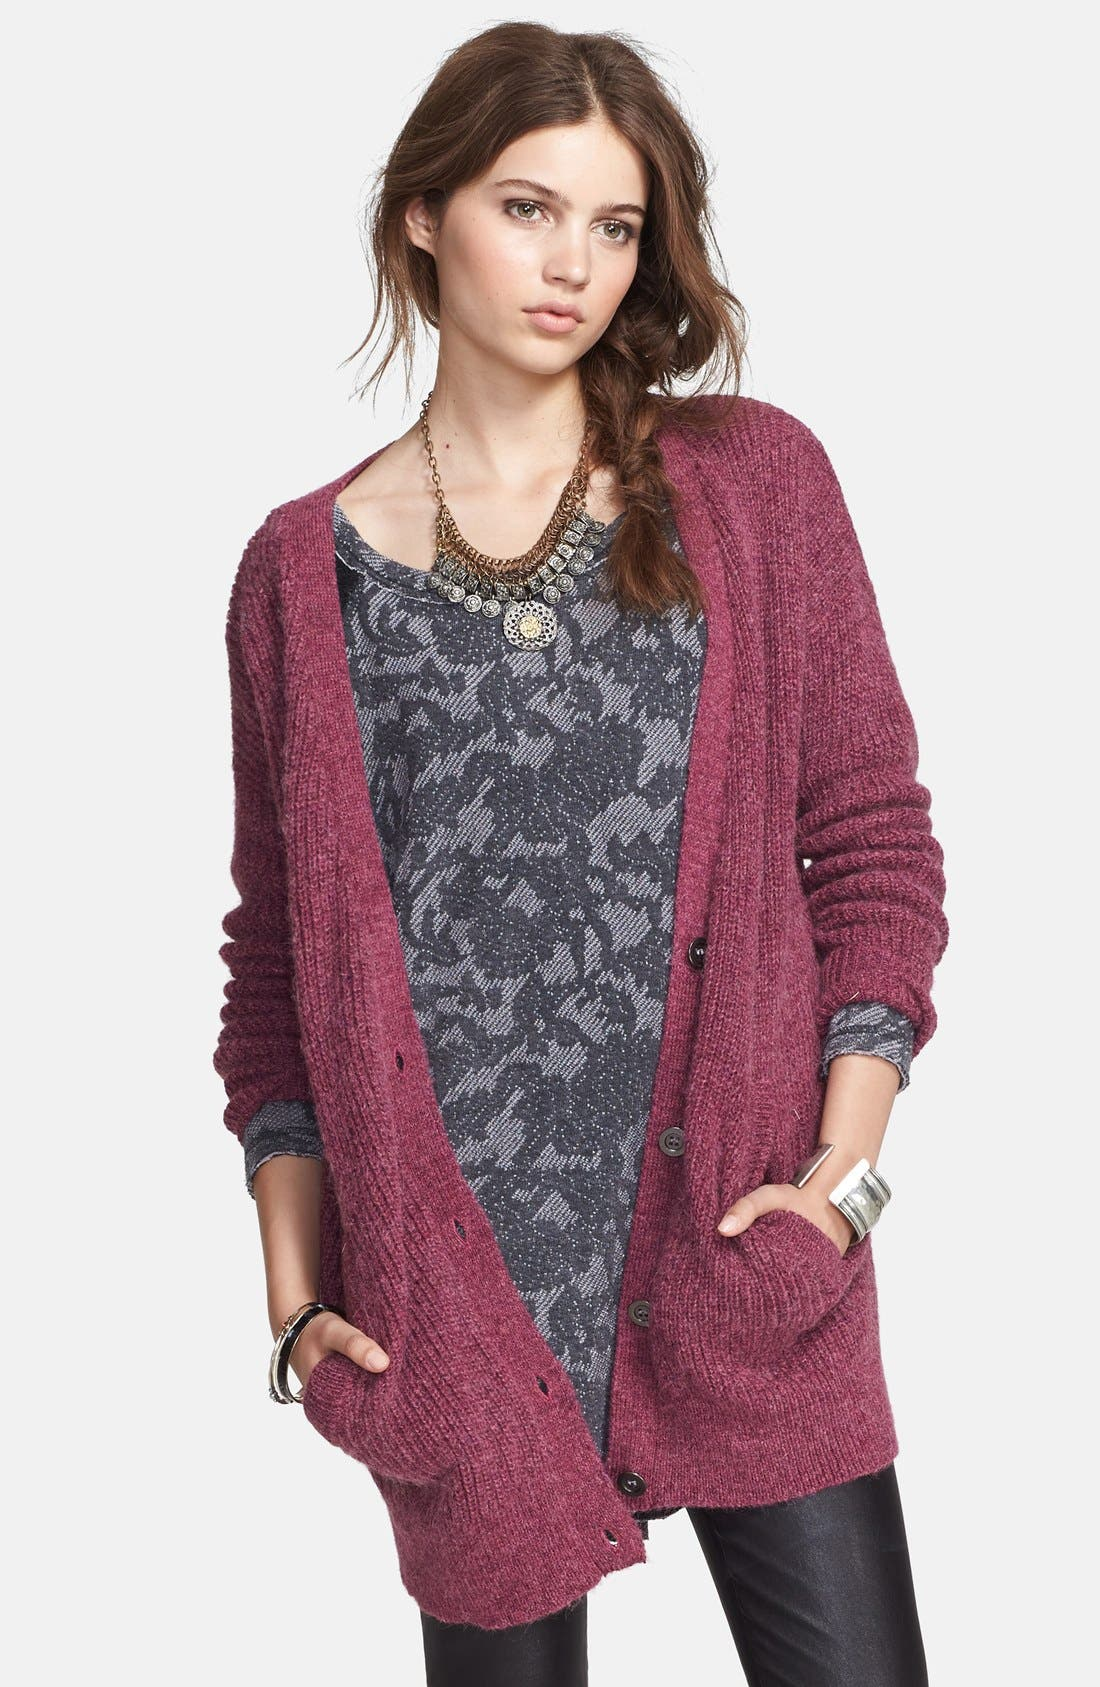 Alternate Image 1 Selected - Free People 'Cloudy Day' Long Cardigan